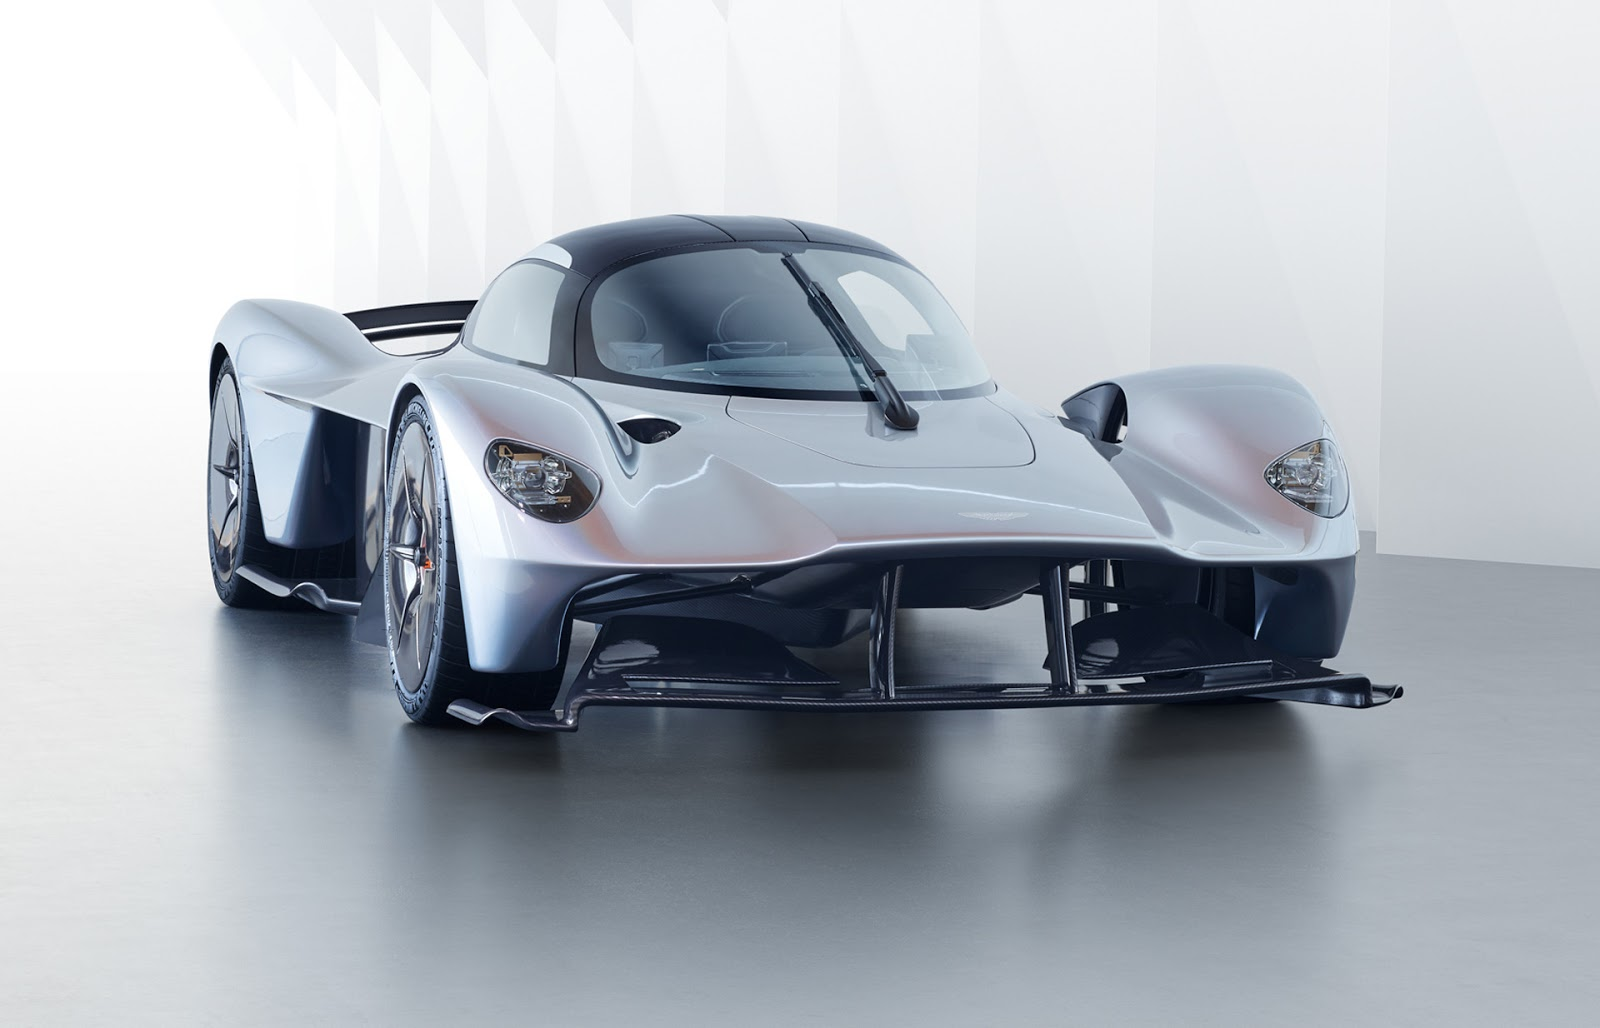 Aston Martin Valkyrie: $3.2 Million